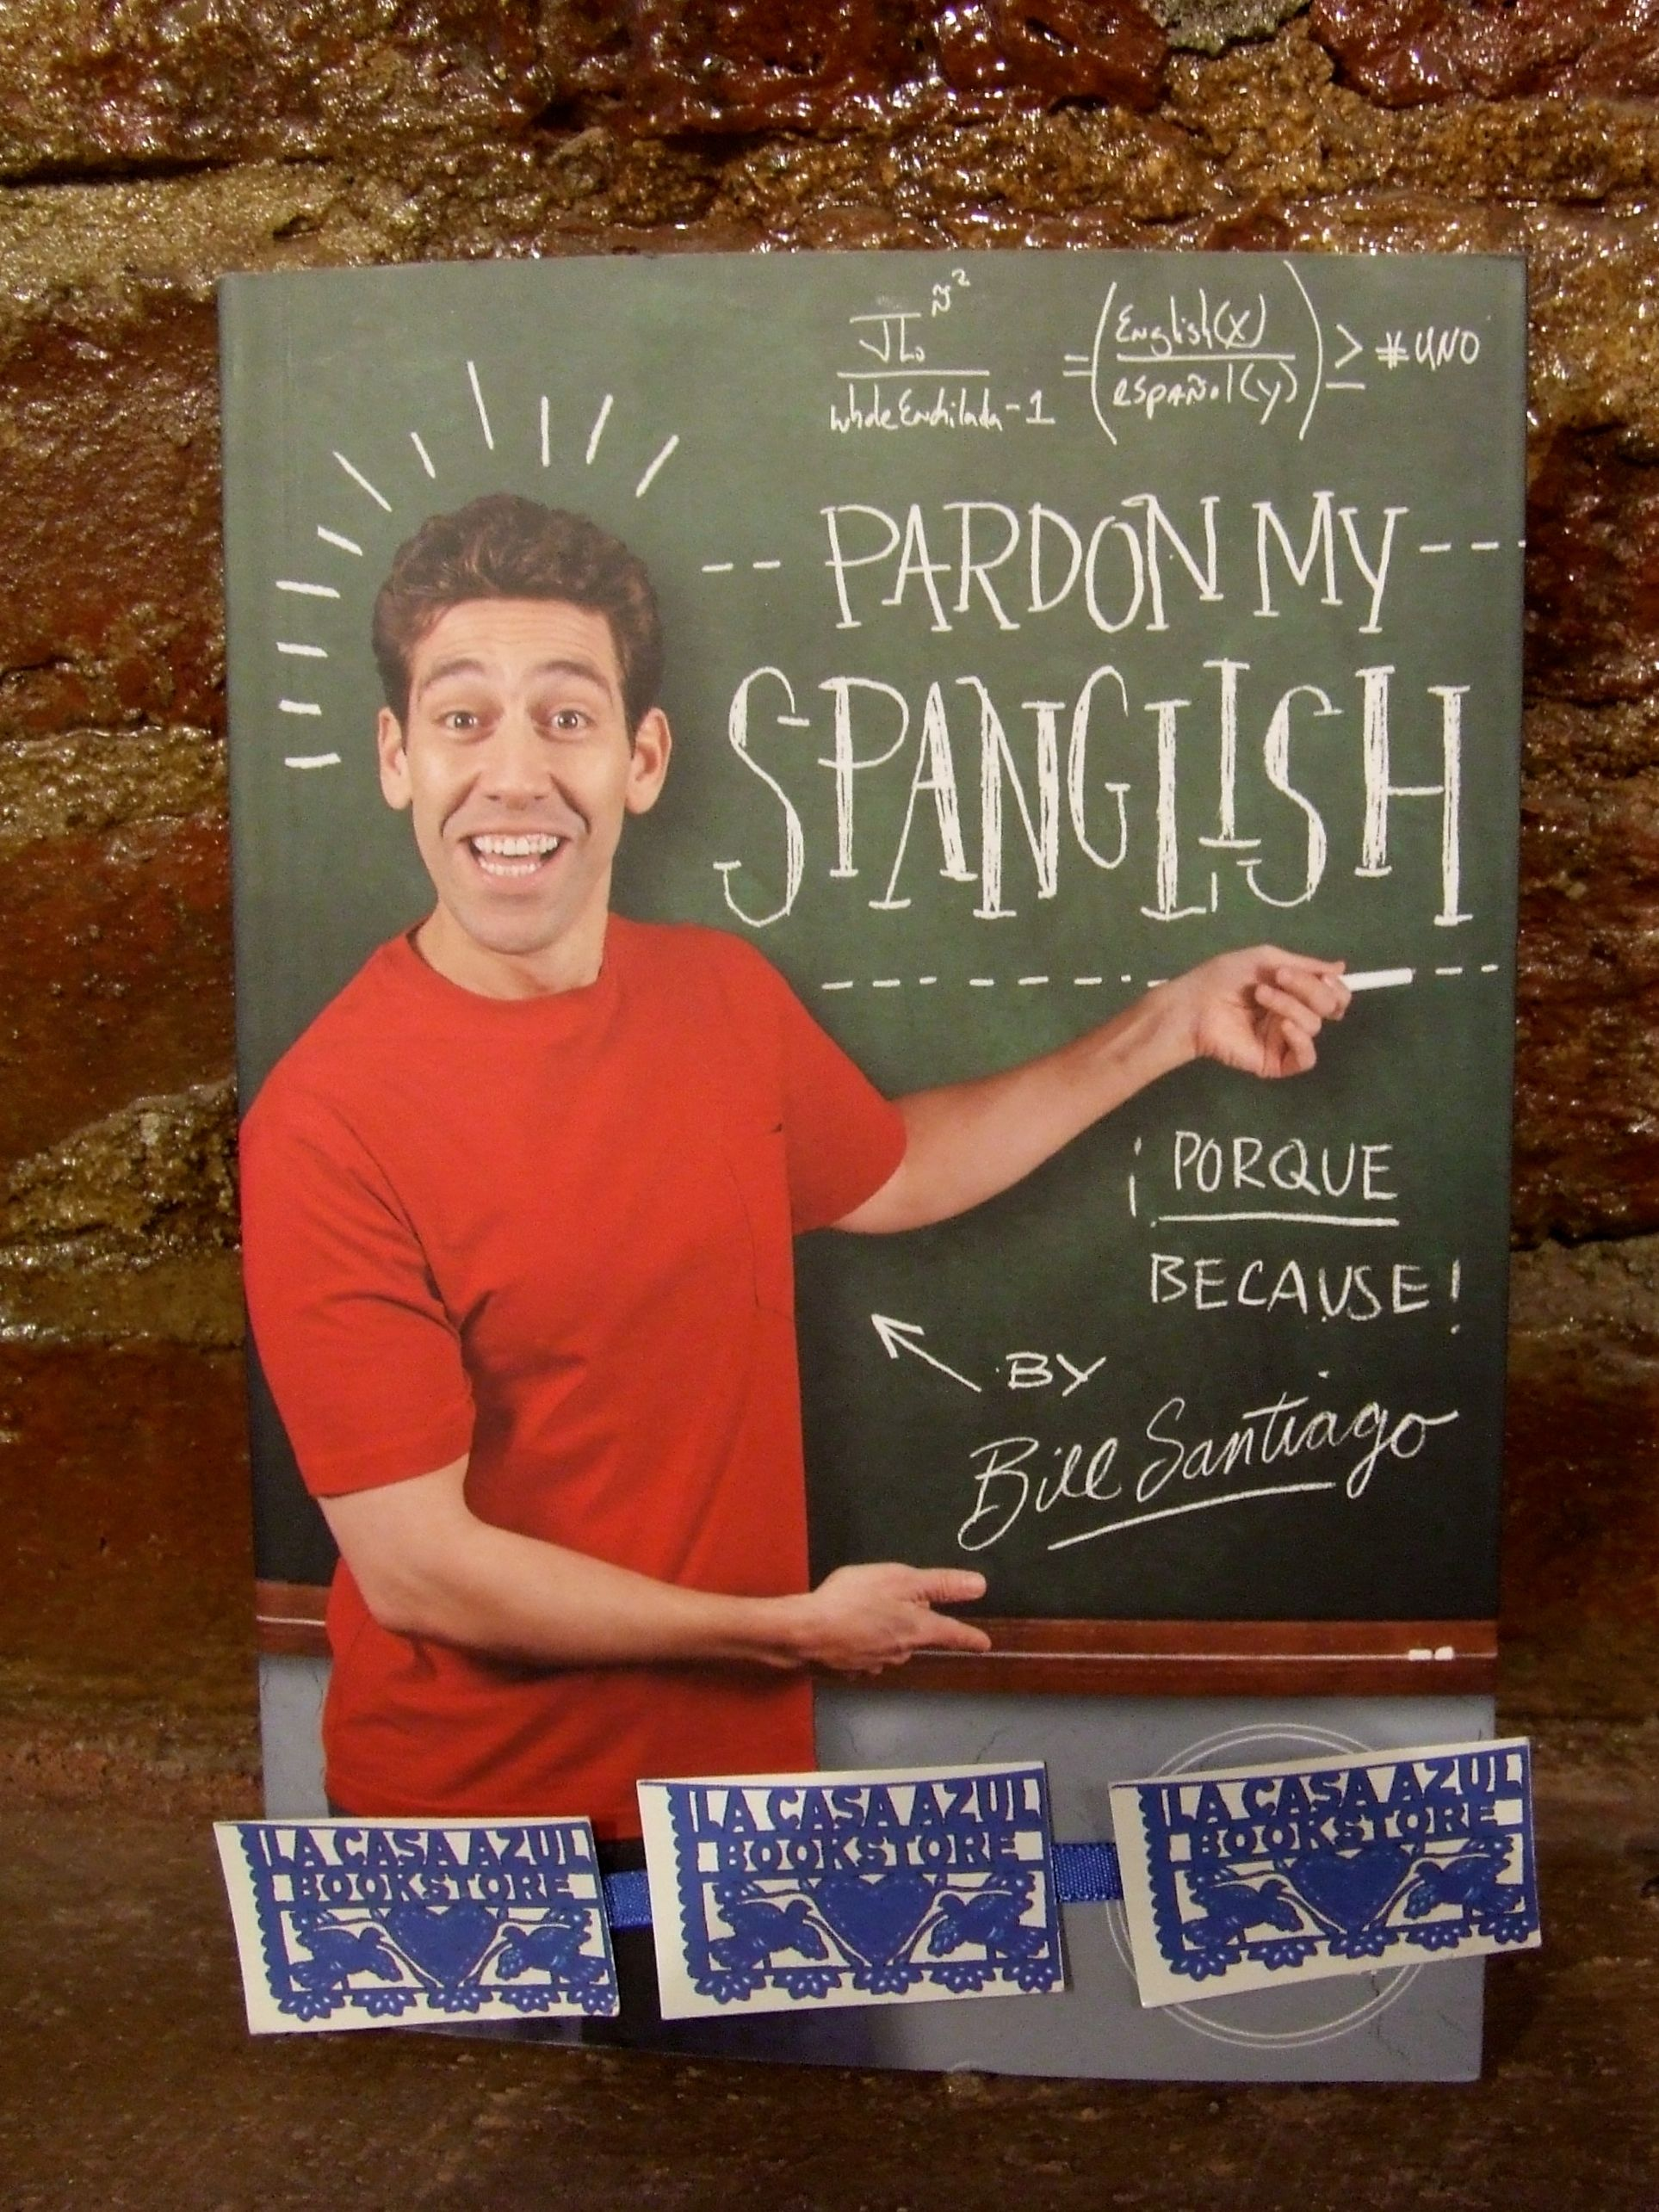 pardon my spanglish by bill santiago la casa azul bookstore pardon my spanglish by bill santiago la casa azul bookstore loves latinolit